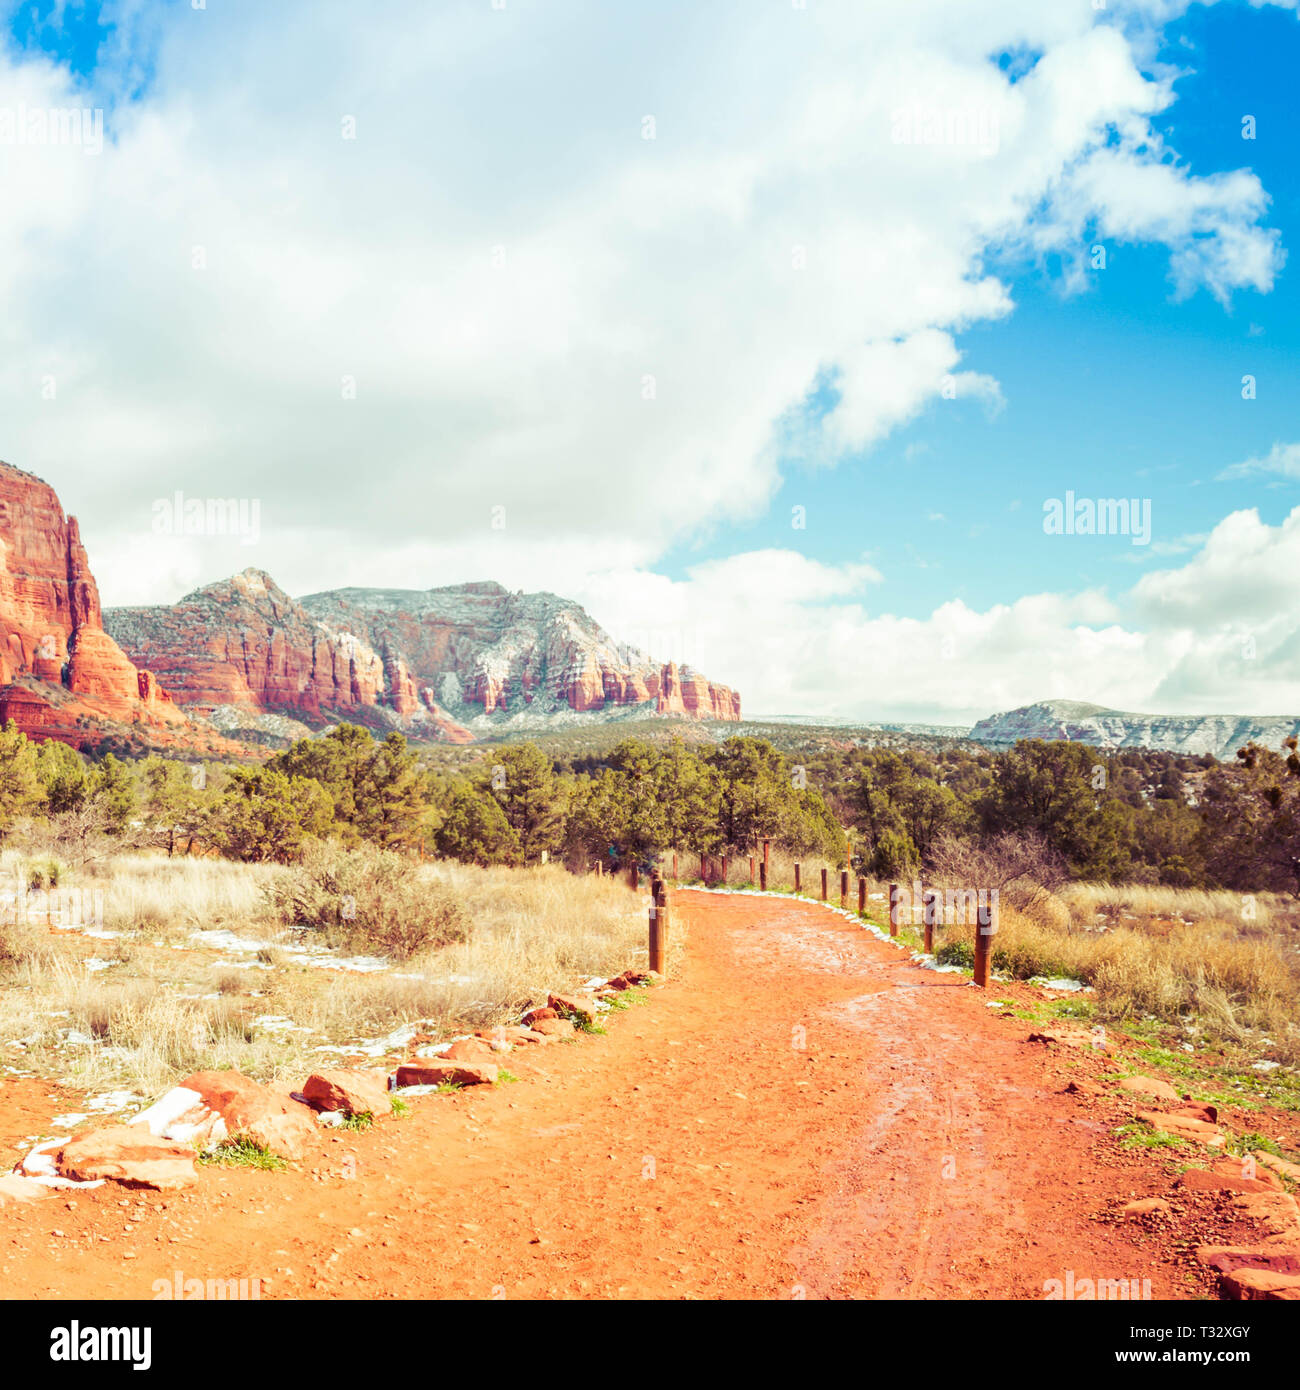 The red rock mountains of Arizona with a red dirt trail leading the viewer to the distant mountains.  The bright puffy clouds and blue sky of the wild - Stock Image